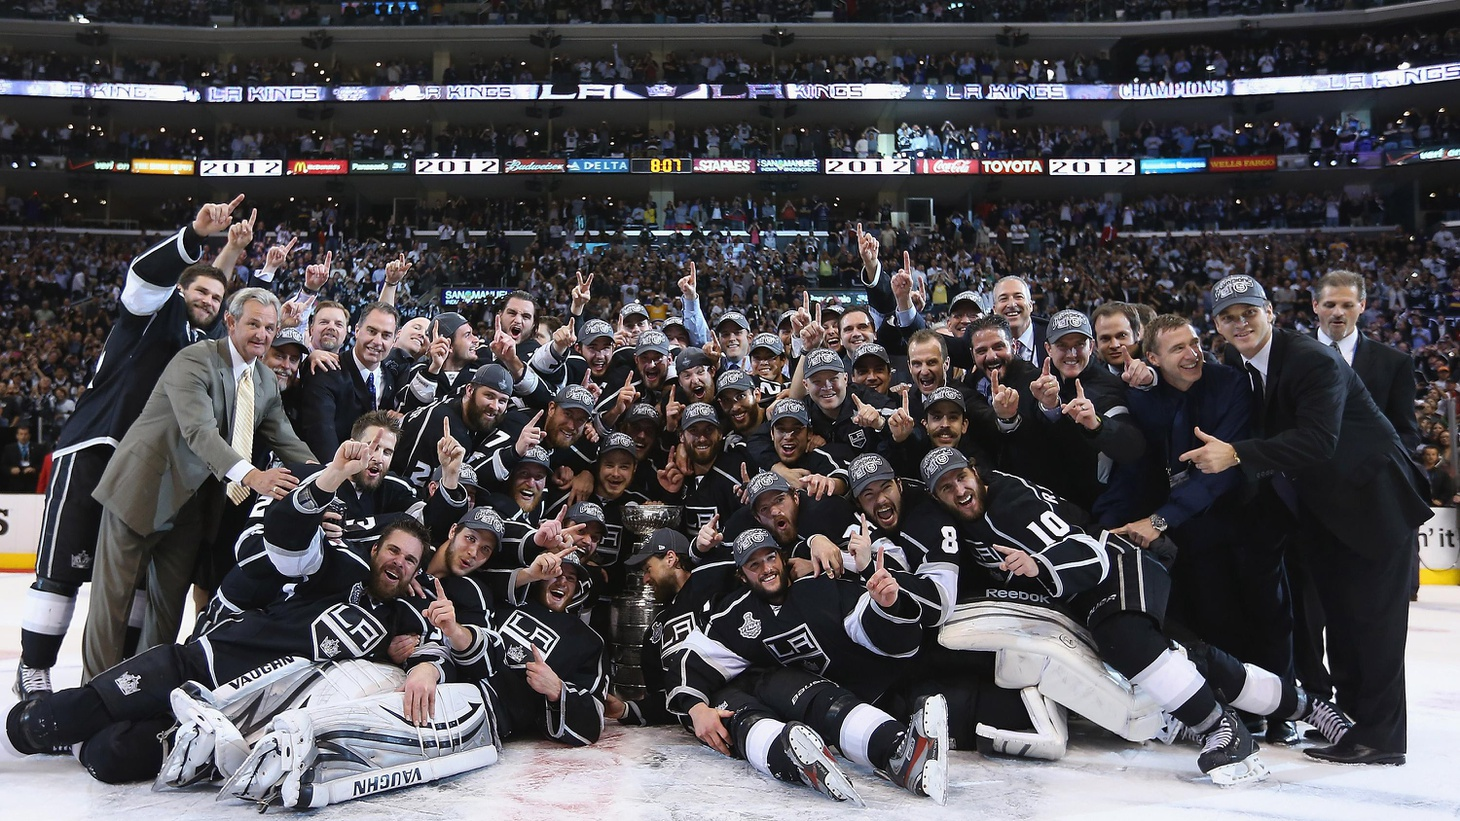 For the first time in their 45 years of existence, the LA Kings have won the Stanley Cup, the championship of pro hockey. We hear how the very unlikely took place.